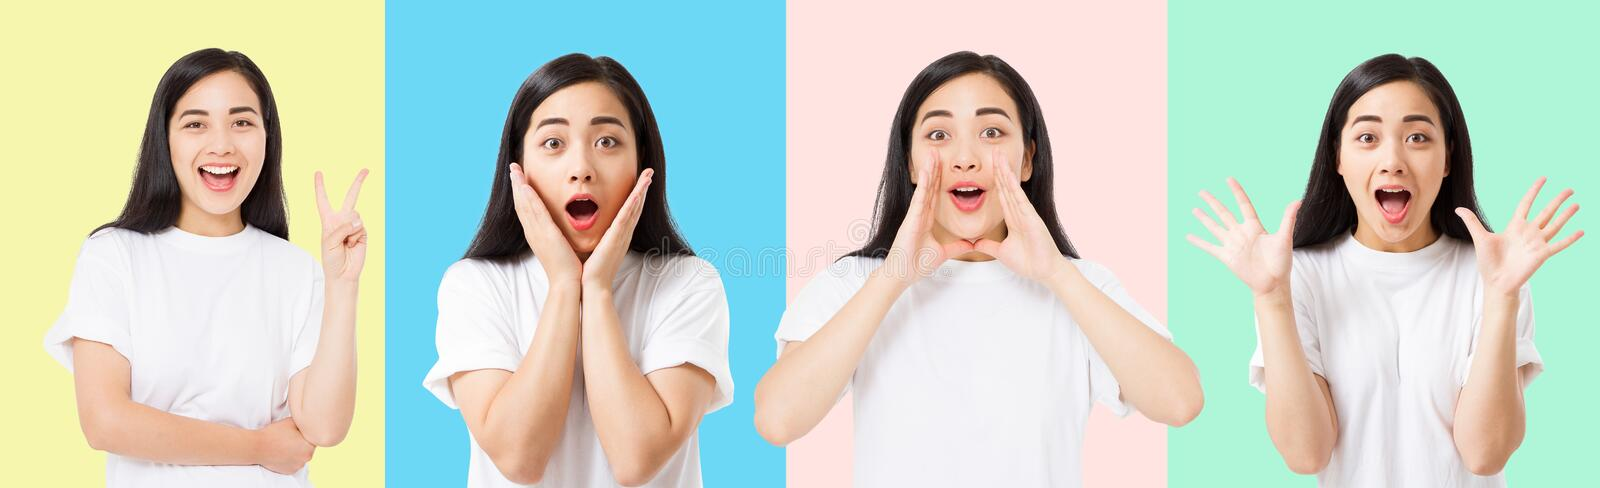 Collage of surprised shocked excited asian woman face isolated on colorful background. Young asian girl in summer t shirt. stock images